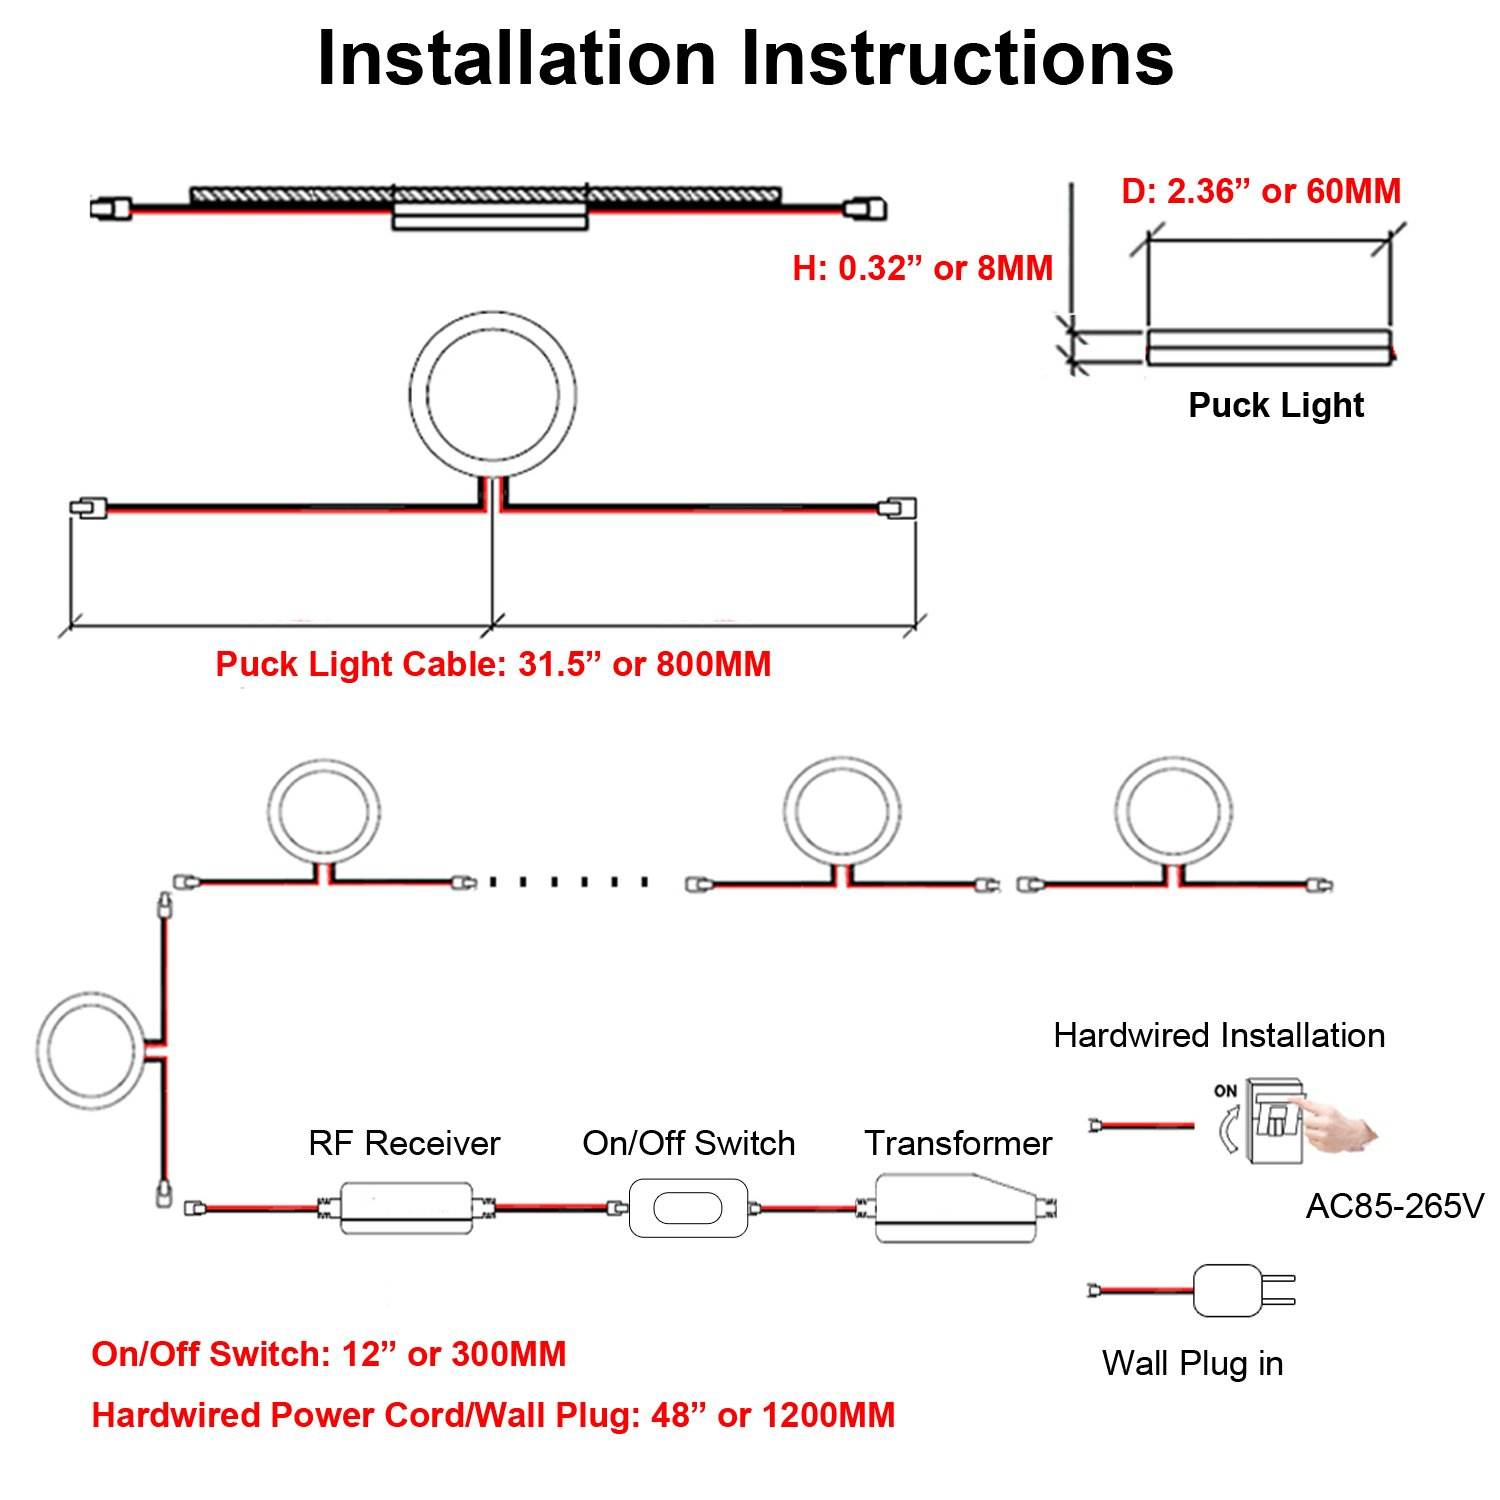 Aiboo Linkable Under Cabinet Led Lighting 12v Dimmable Puck Lights Basic 12 Volt Wiring Diagram For With Wireless Rf Remote Control Hardwired Wall Plug In Furniture Cupboard